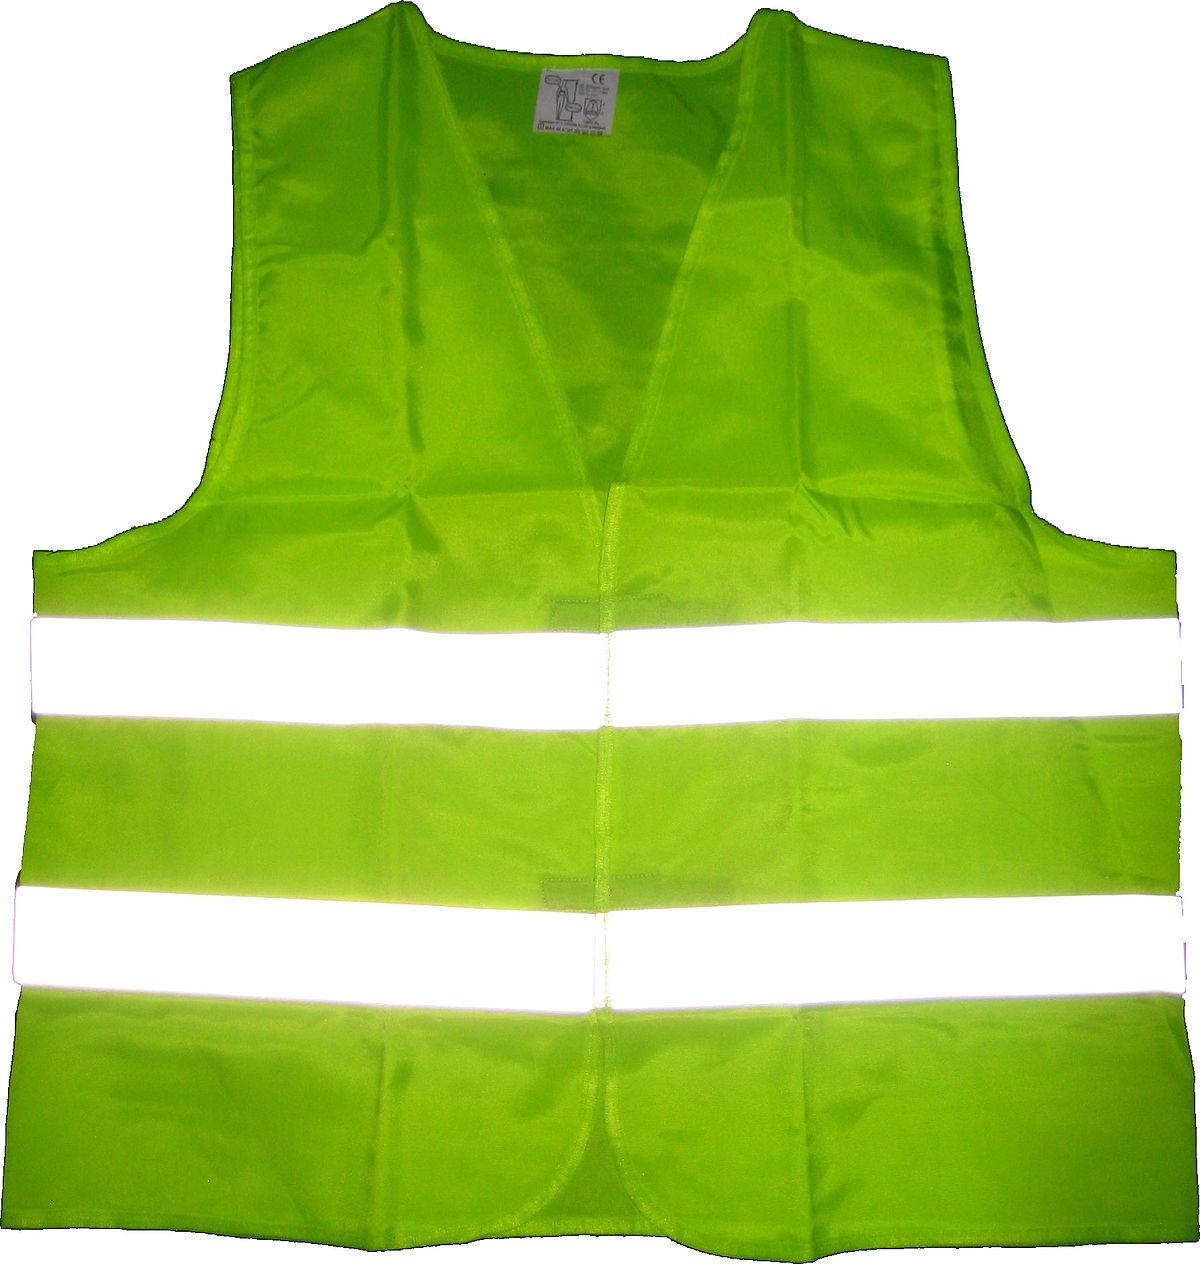 High Visibility Clothing Wikipedia